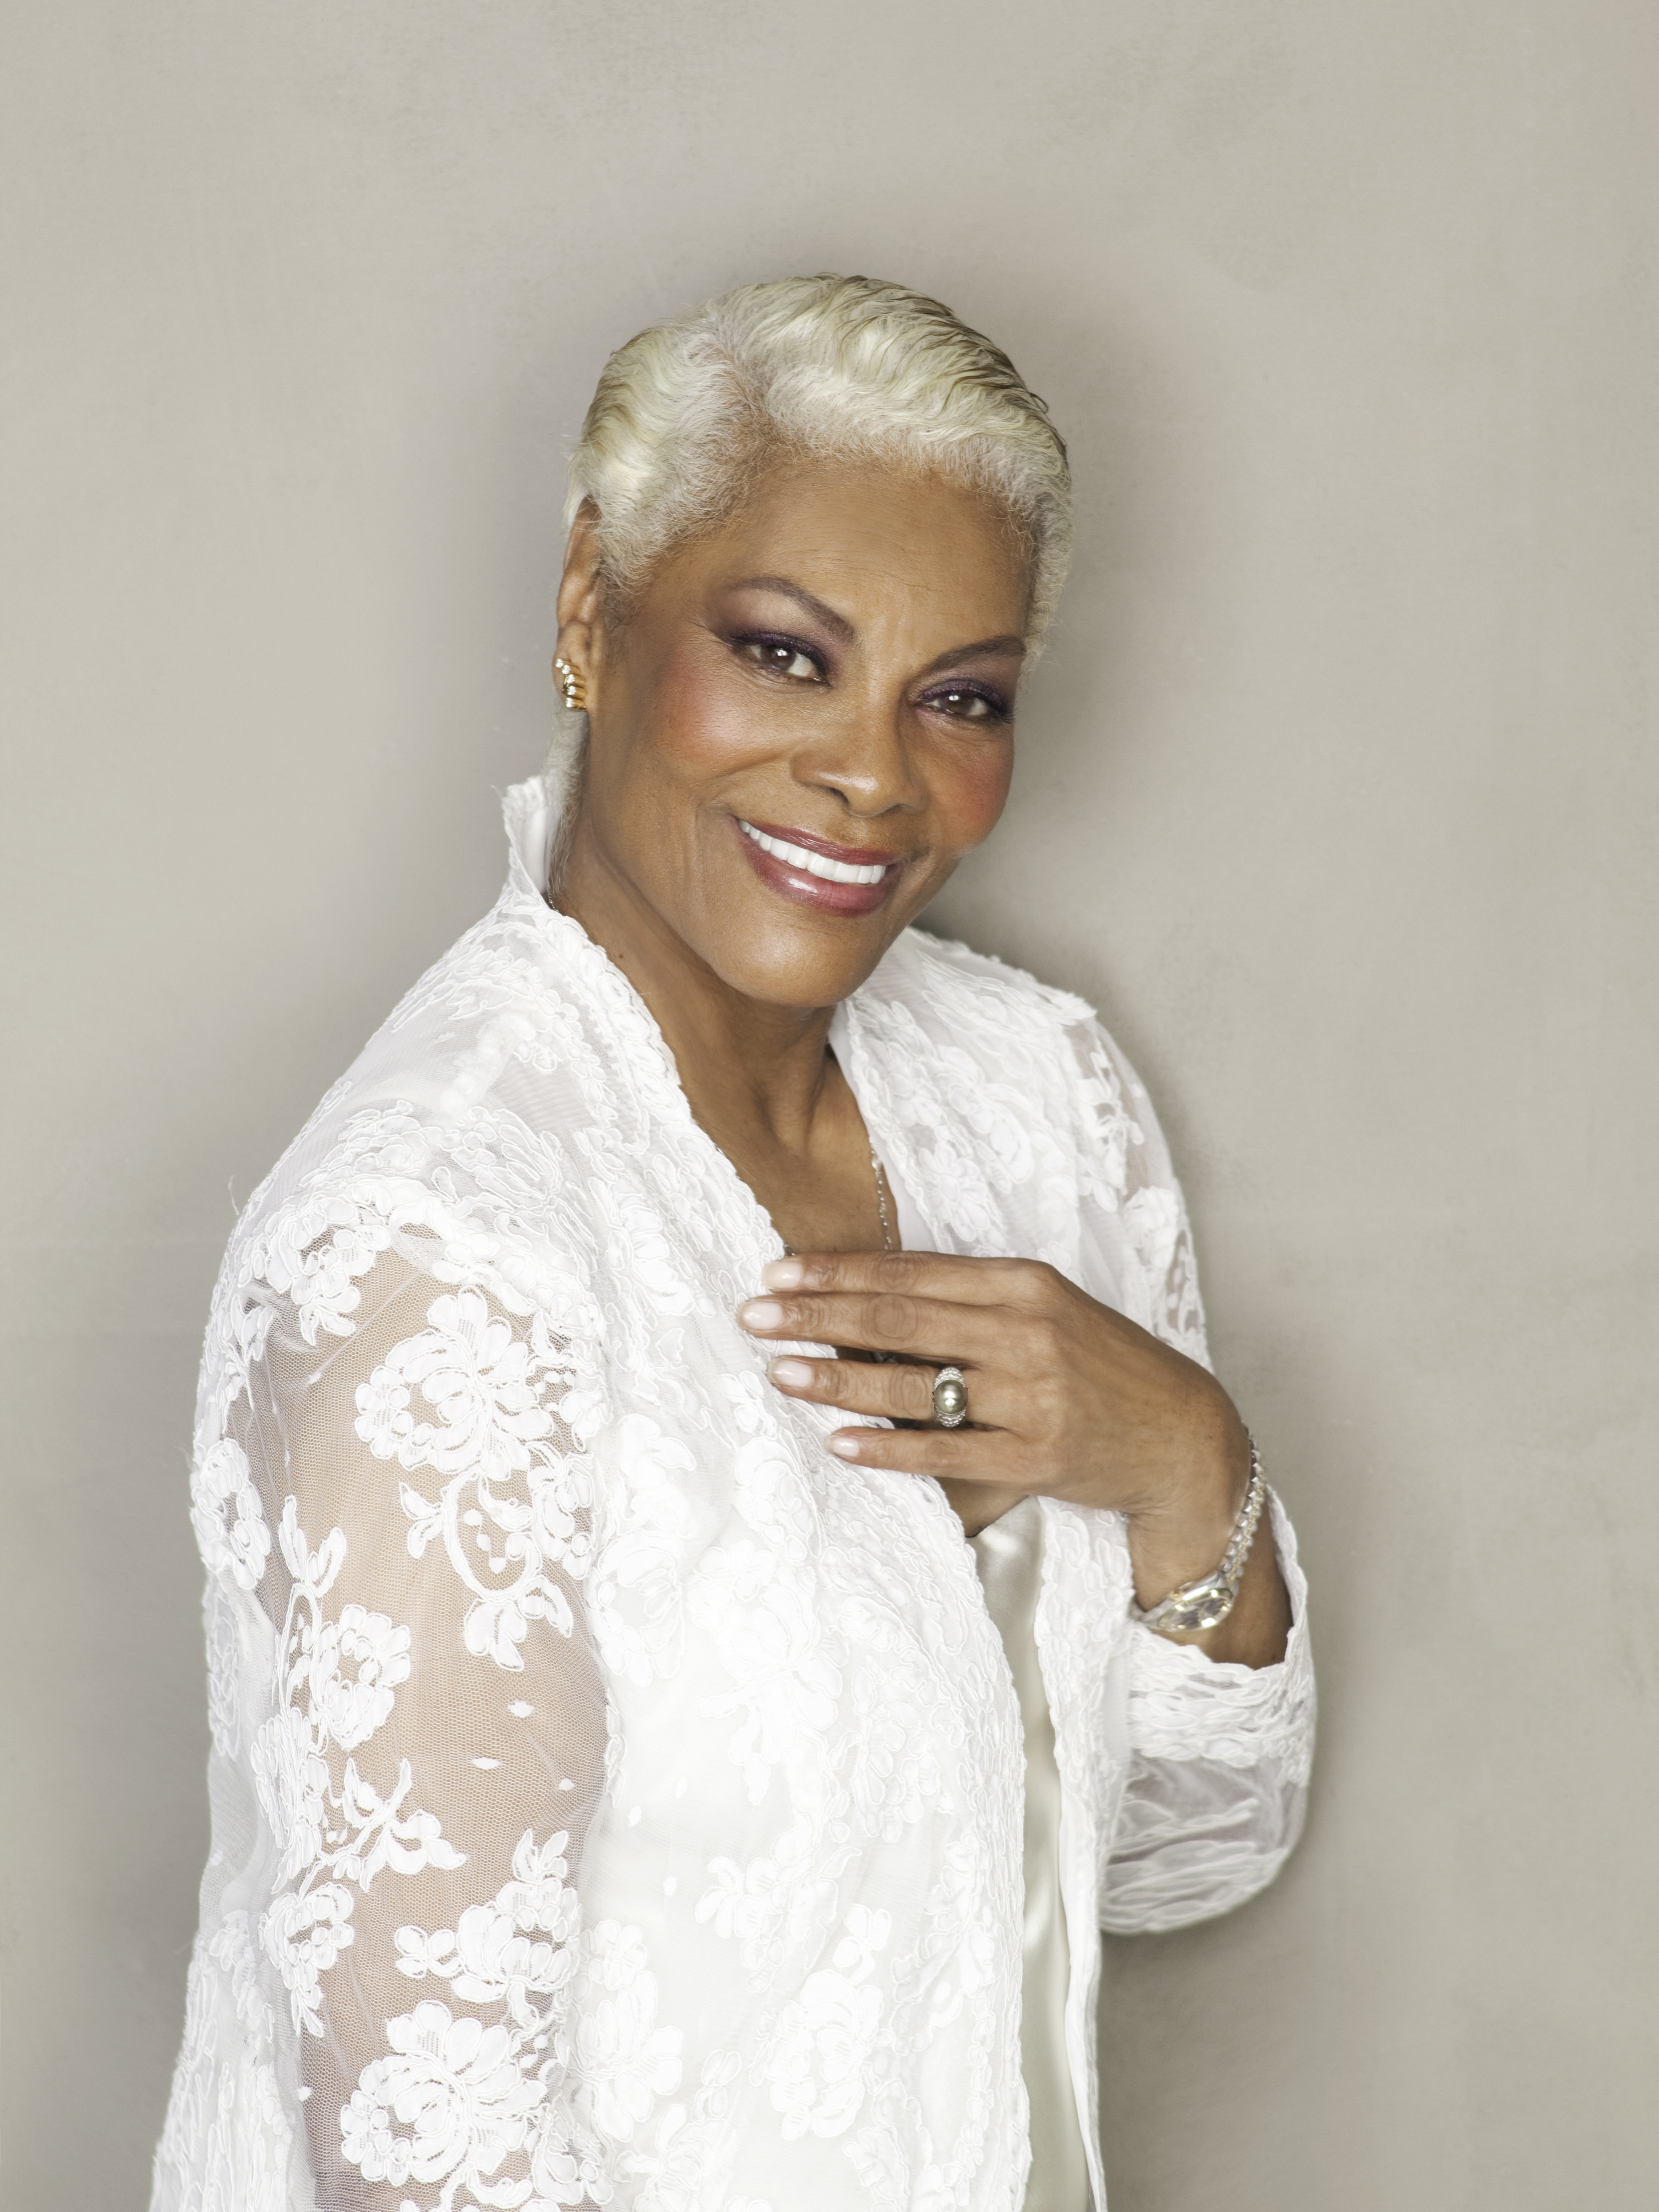 dionne warwick a house is not a homedionne warwick - that's what friends are for, dionne warwick walk on by, dionne warwick walk on by скачать, dionne warwick heartbreaker, dionne warwick walk on by перевод, dionne warwick i'll never love this way again lyrics, dionne warwick i say a little prayer, dionne warwick discography, dionne warwick imdb, dionne warwick golden collection, dionne warwick live, dionne warwick i say a little prayer for you lyrics, dionne warwick houston, dionne warwick a house is not a home, dionne warwick i'm your puppet, dionne warwick mp3, dionne warwick voice type, dionne warwick deja vu lyrics, dionne warwick track of the cat lyrics, dionne warwick similar artists